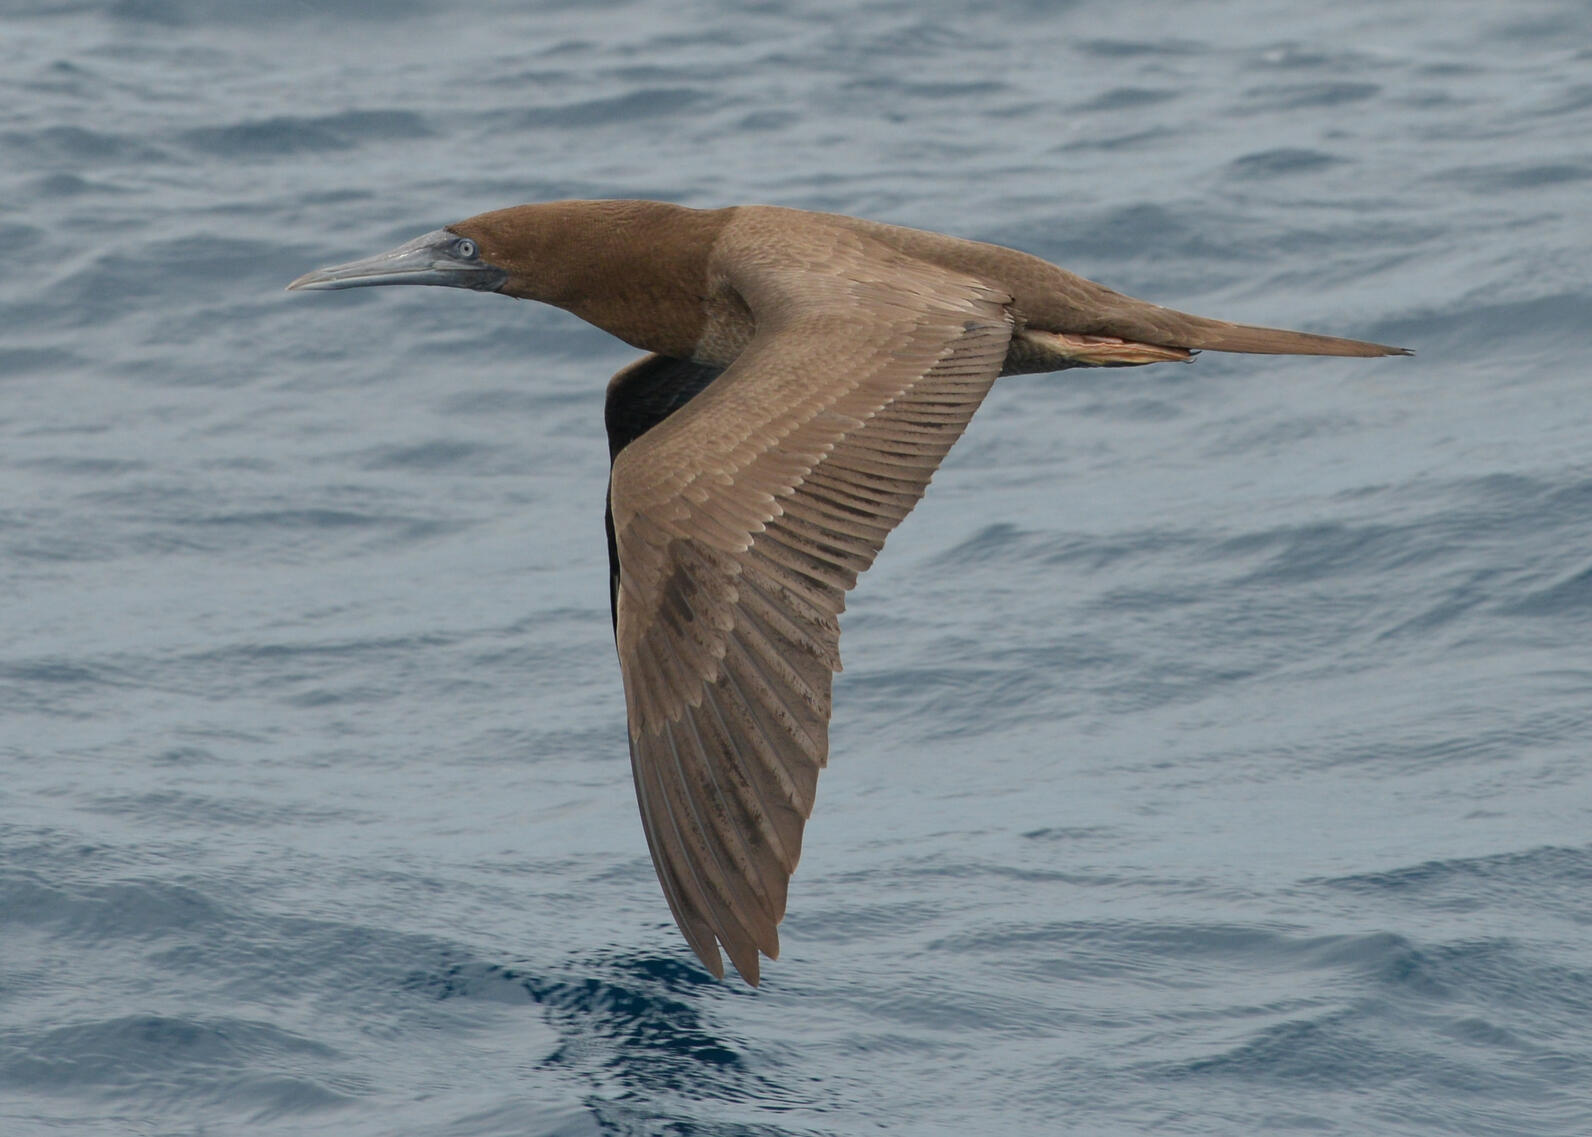 Spotted! A Brown Booby enters the Florida Big Year checklist.